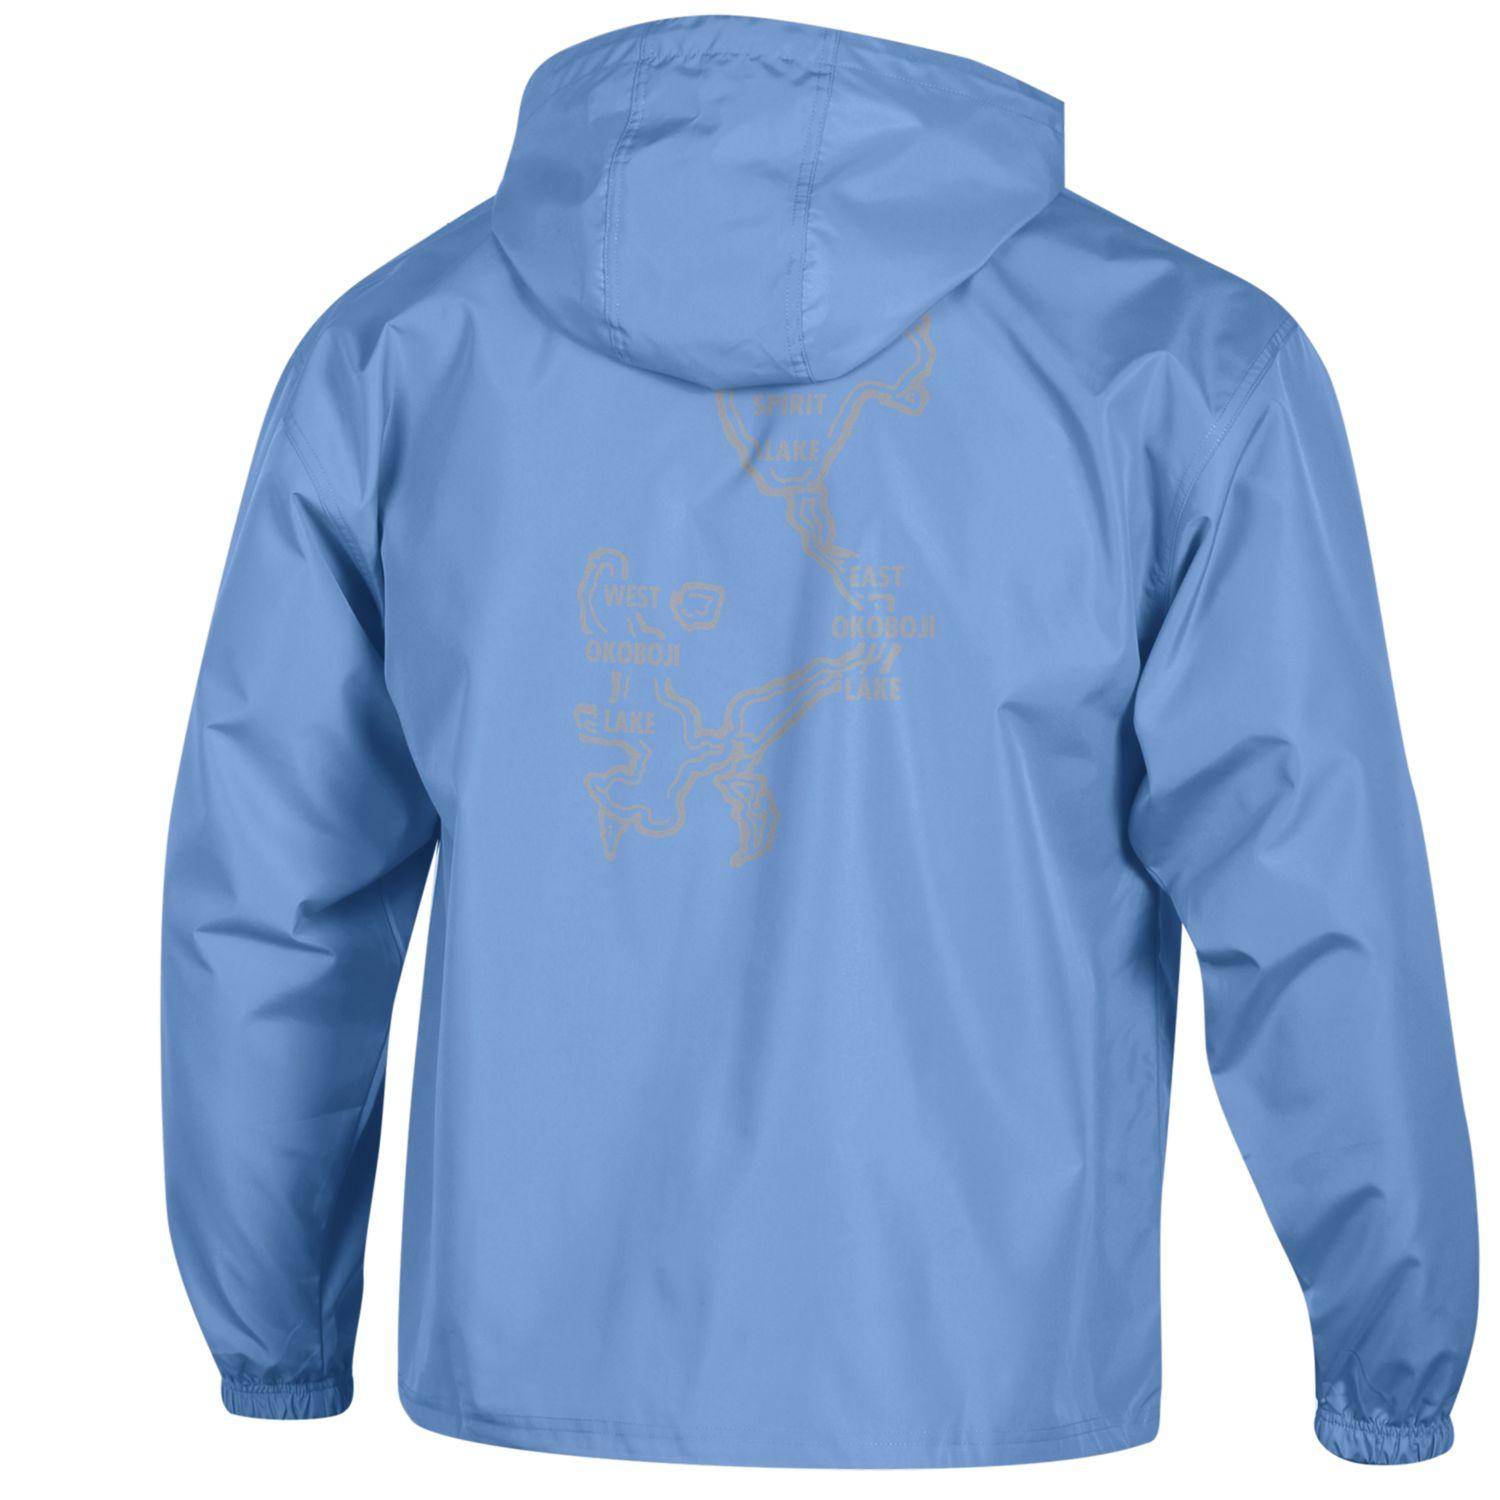 CHAMPION Pack N Go OKOBOJI Jacket - Light Blue